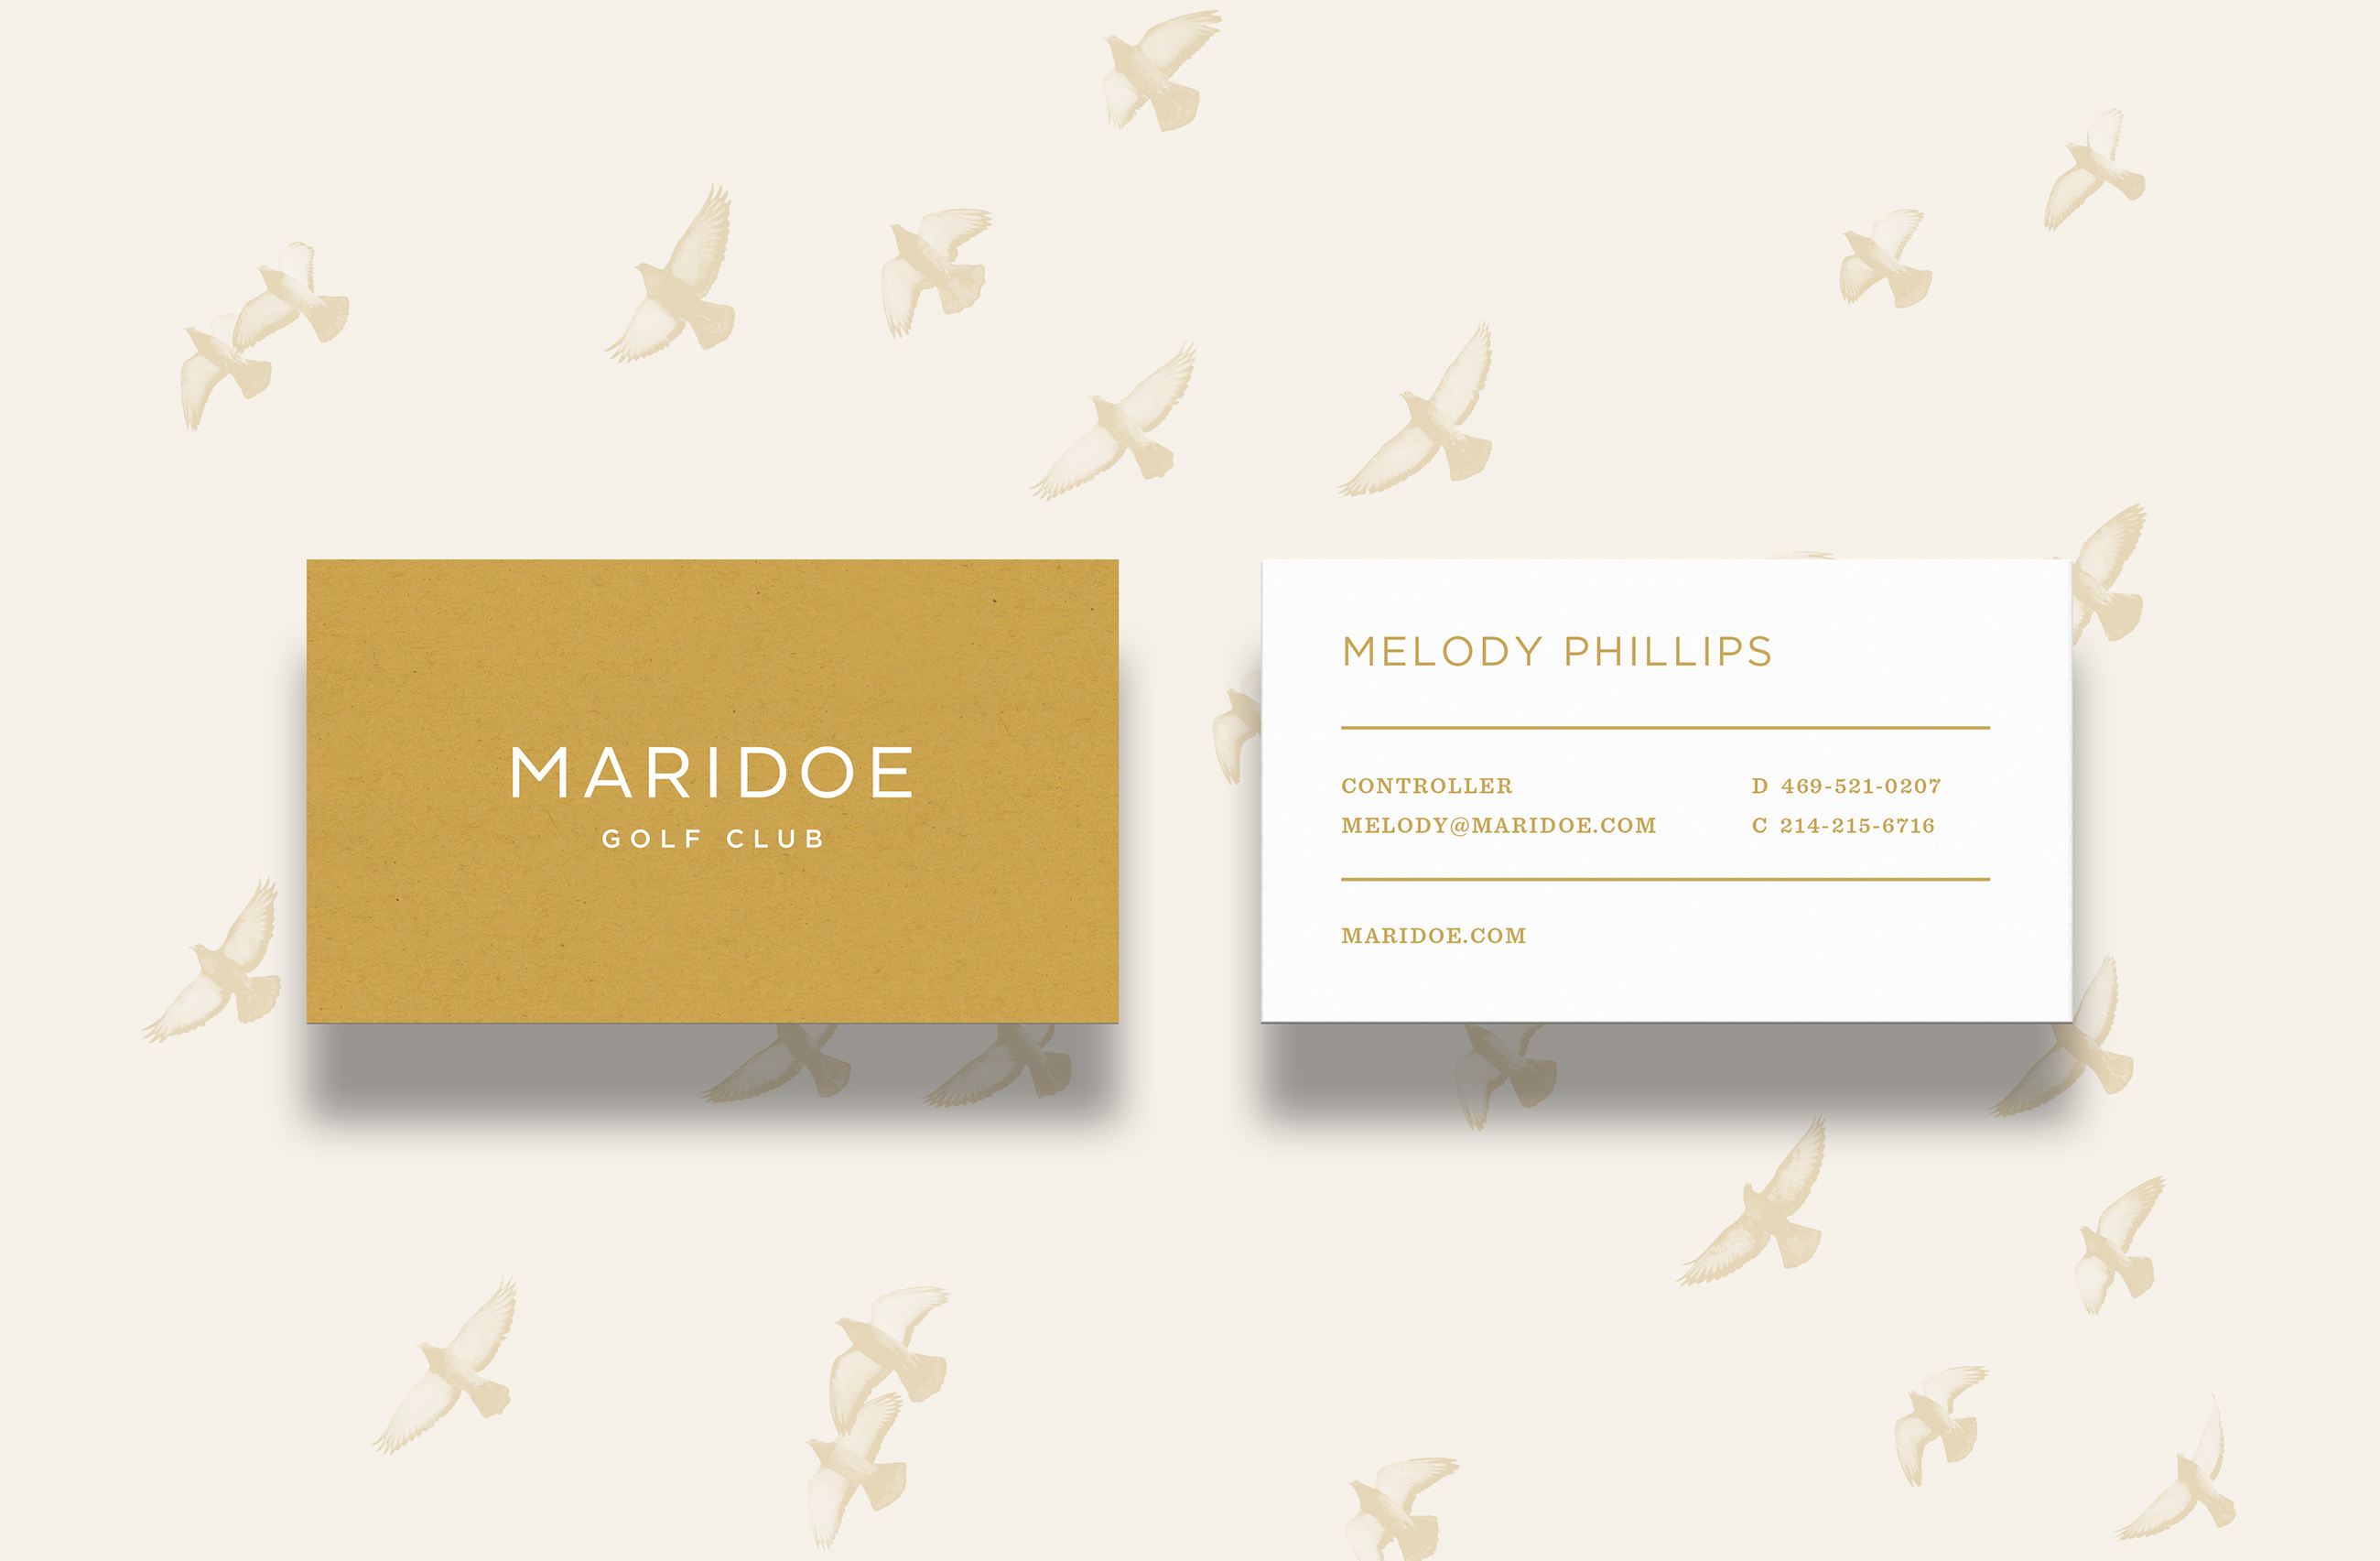 Maridoe Portfolio Large Bus Cards(actual)